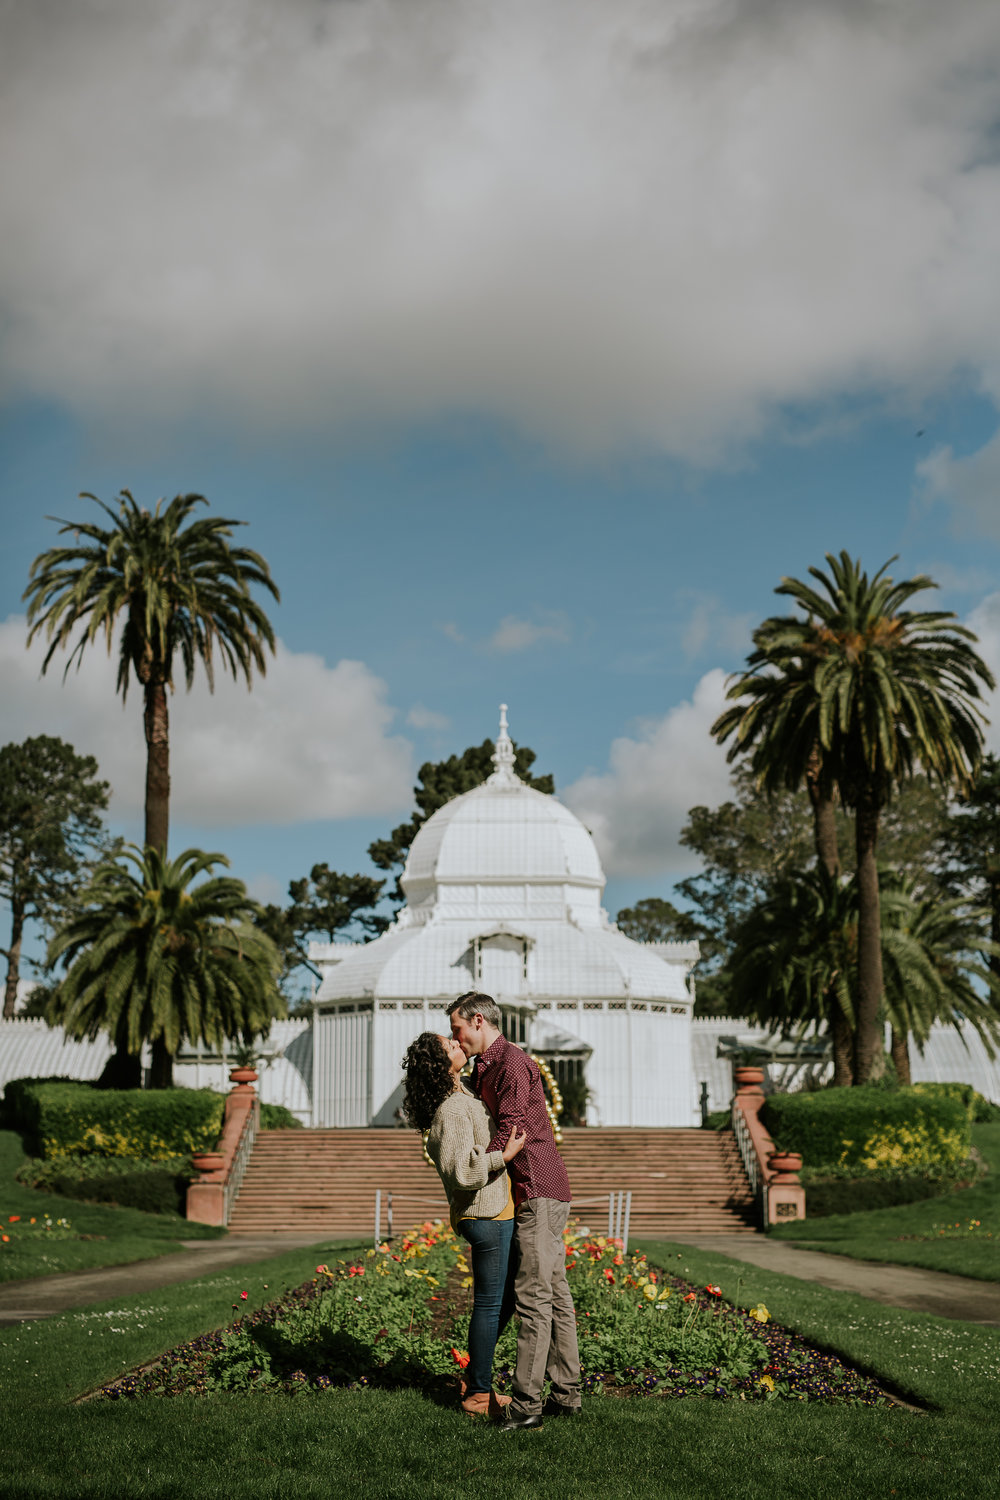 Ada and dave - san-francisco-engagement-golden-gate-park-sutro-baths-25.jpg